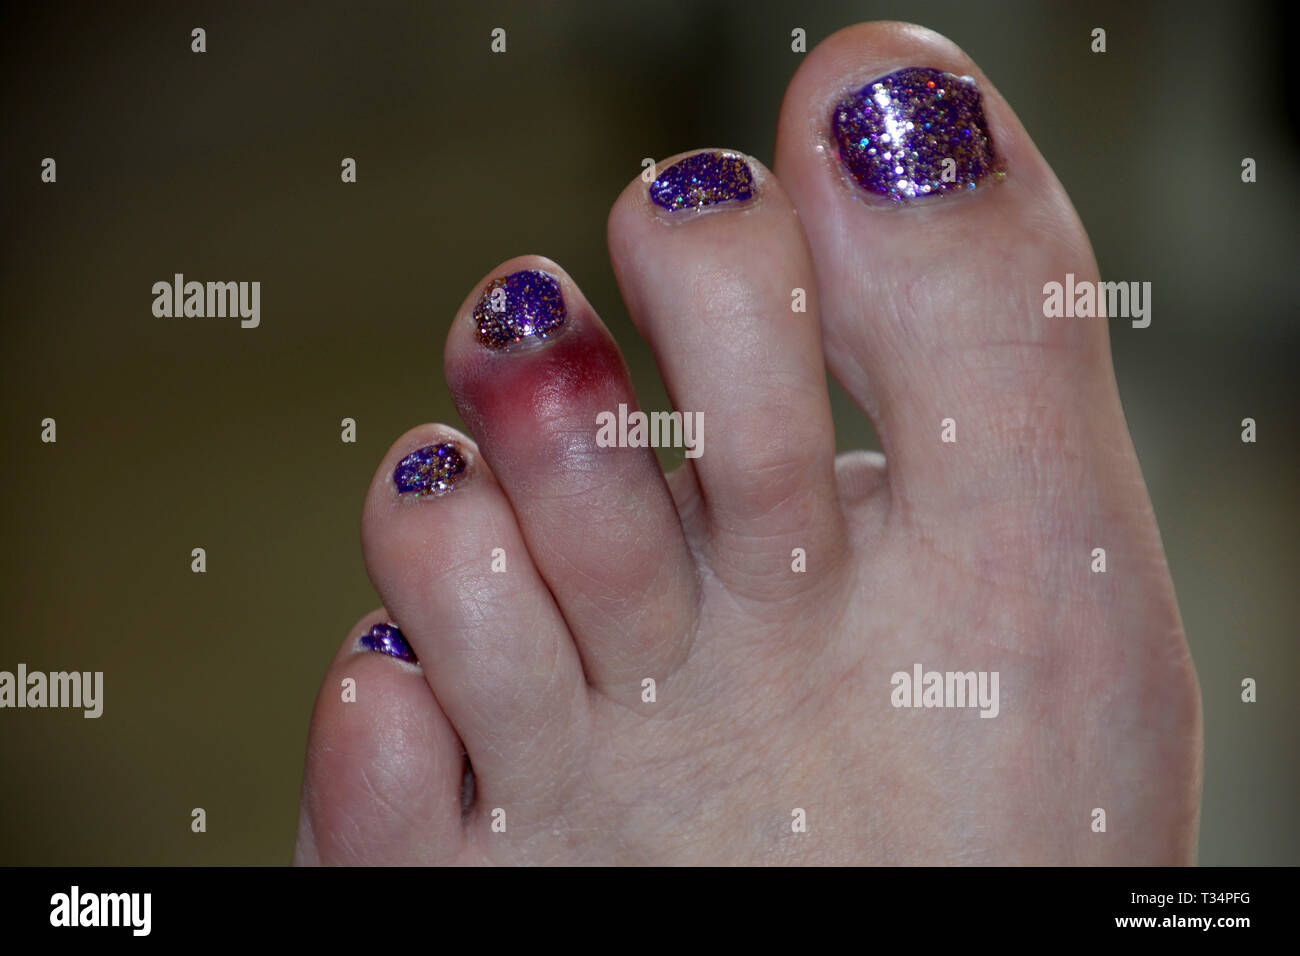 dislocated toe bruising after sport mistake, black and blue bruise on the left foot of the middle toe of a female after a painful accident Stock Photo